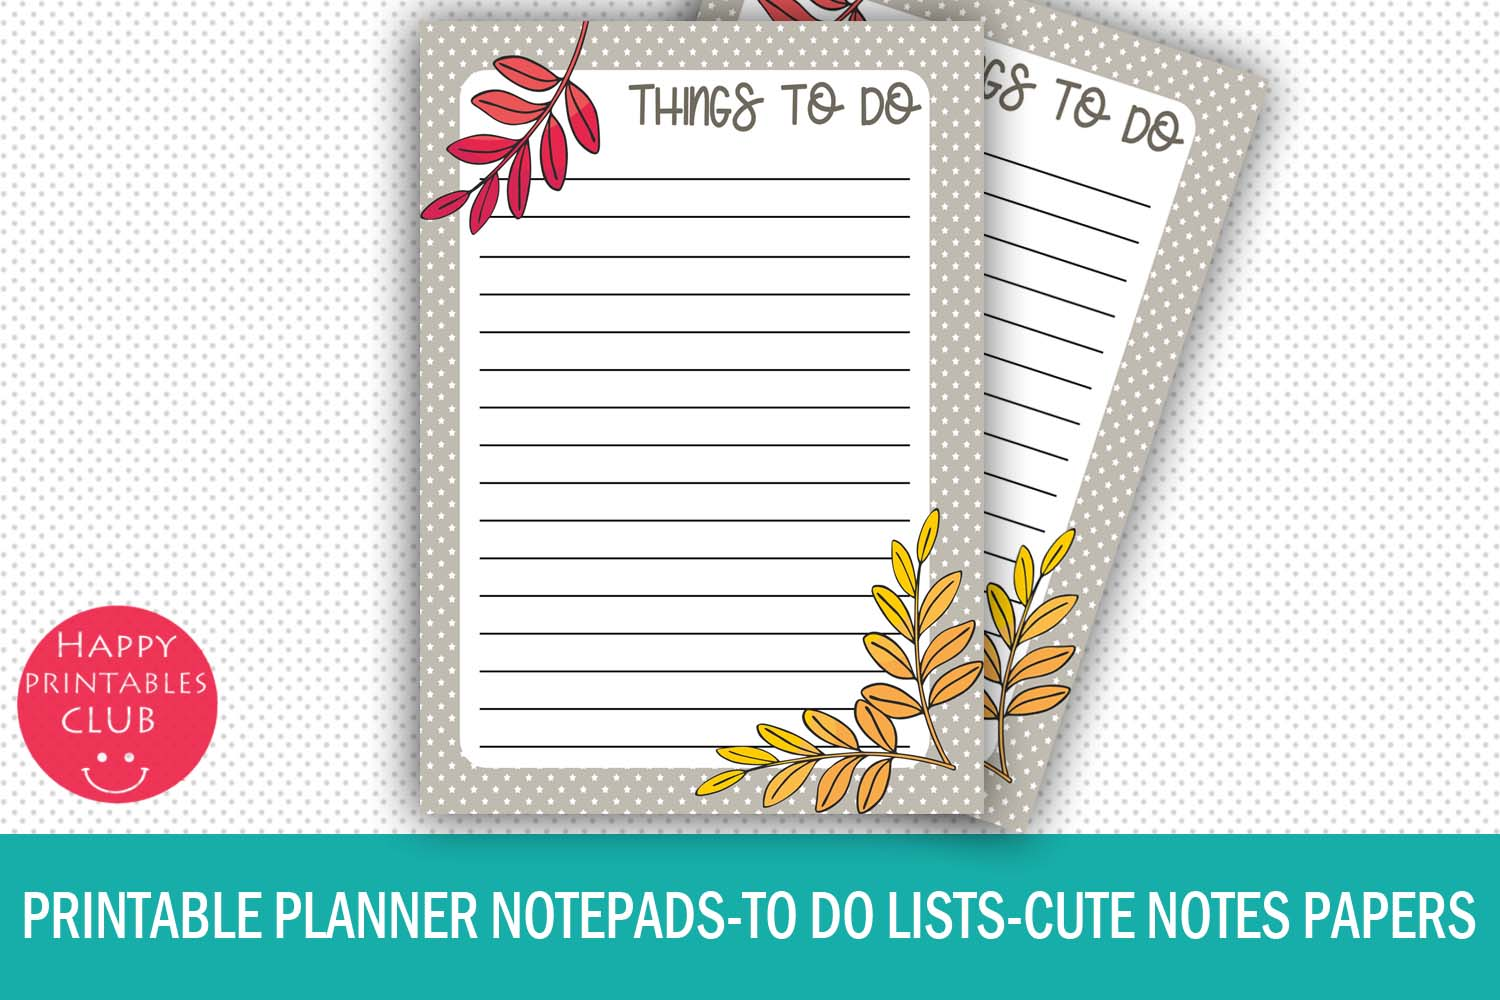 image regarding Printable Notepads named Printable Planner Notepads-Towards Do Lists-Notes Papers-Sheets